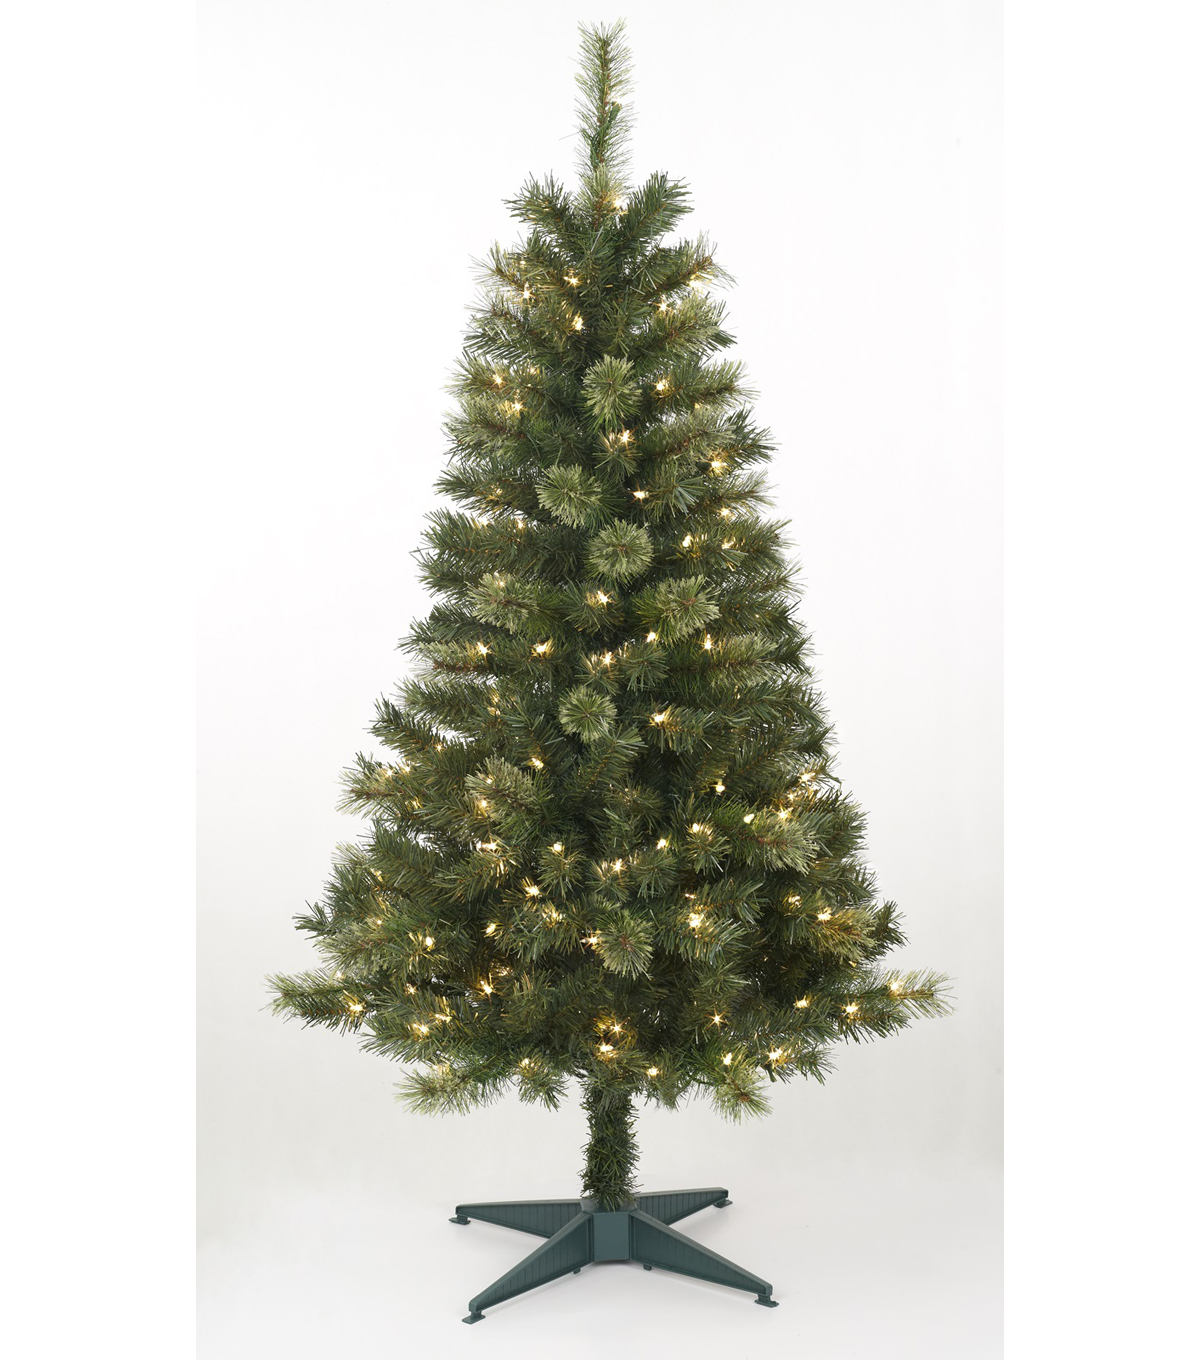 4ft Green Long Needle Prelit Tree